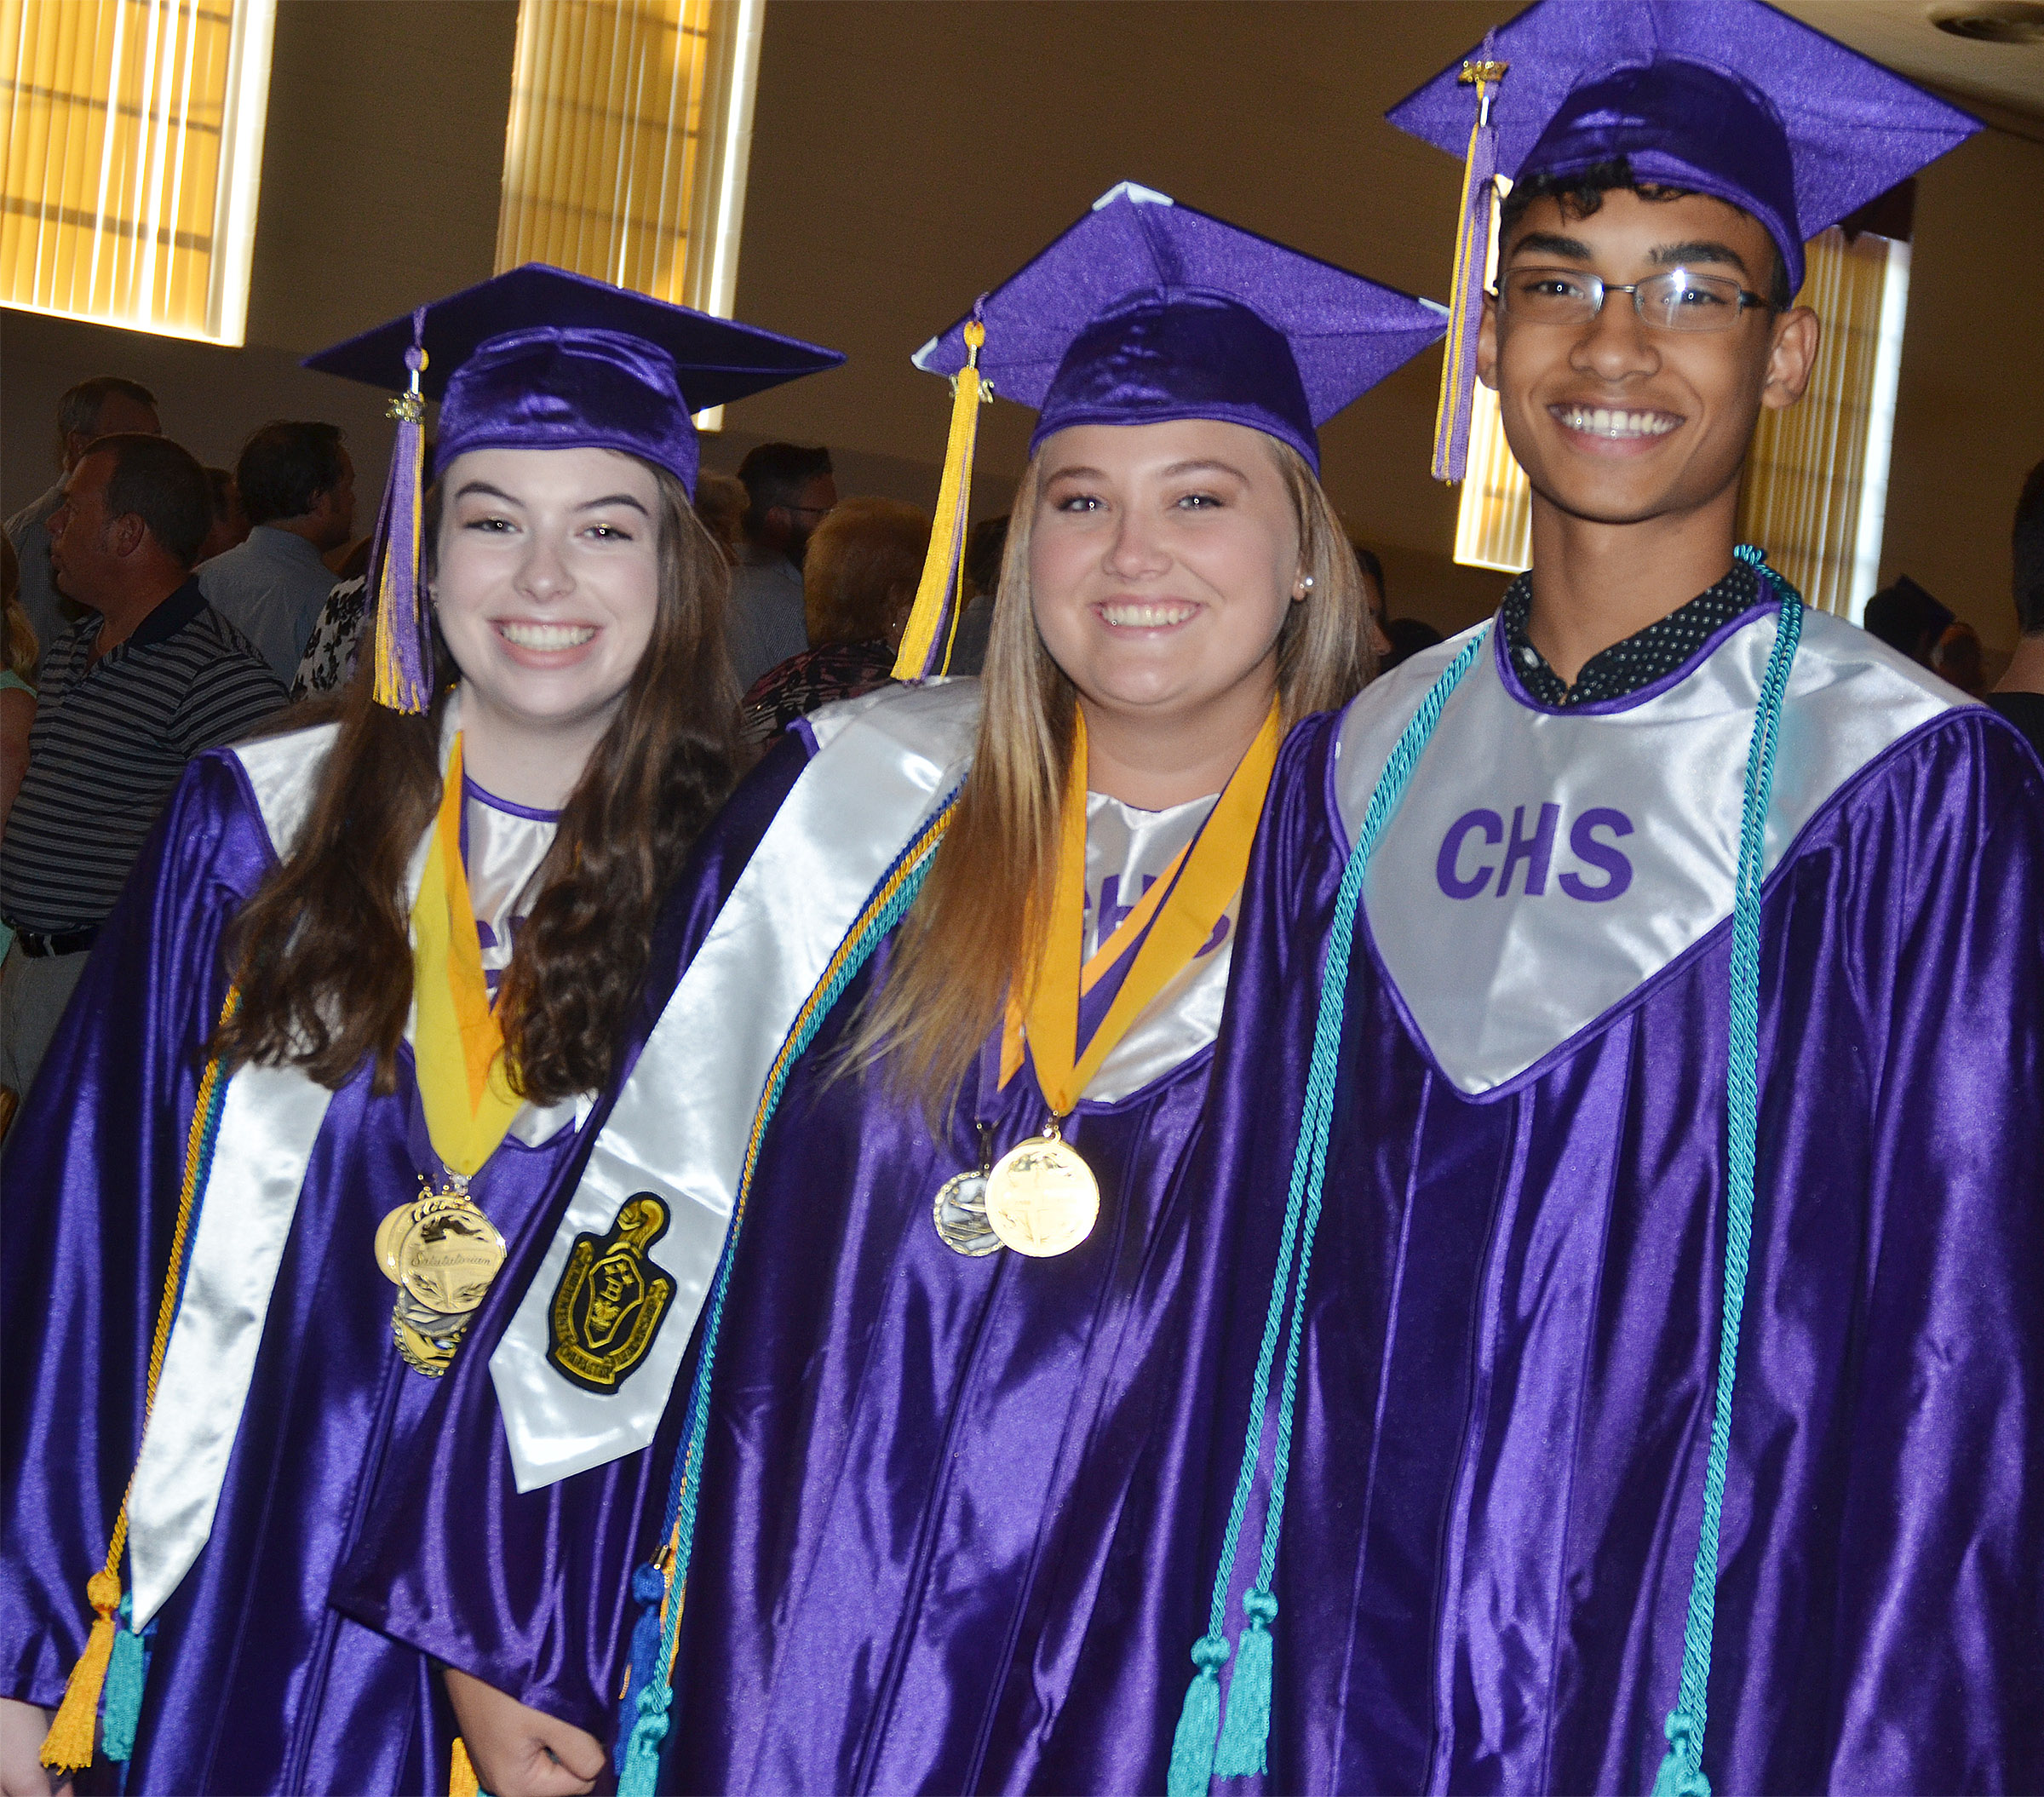 From left, CHS seniors Laura Lamb, Brenna Wethington and Daniel Silva smile as they wait for the baccalaureate ceremony to begin.